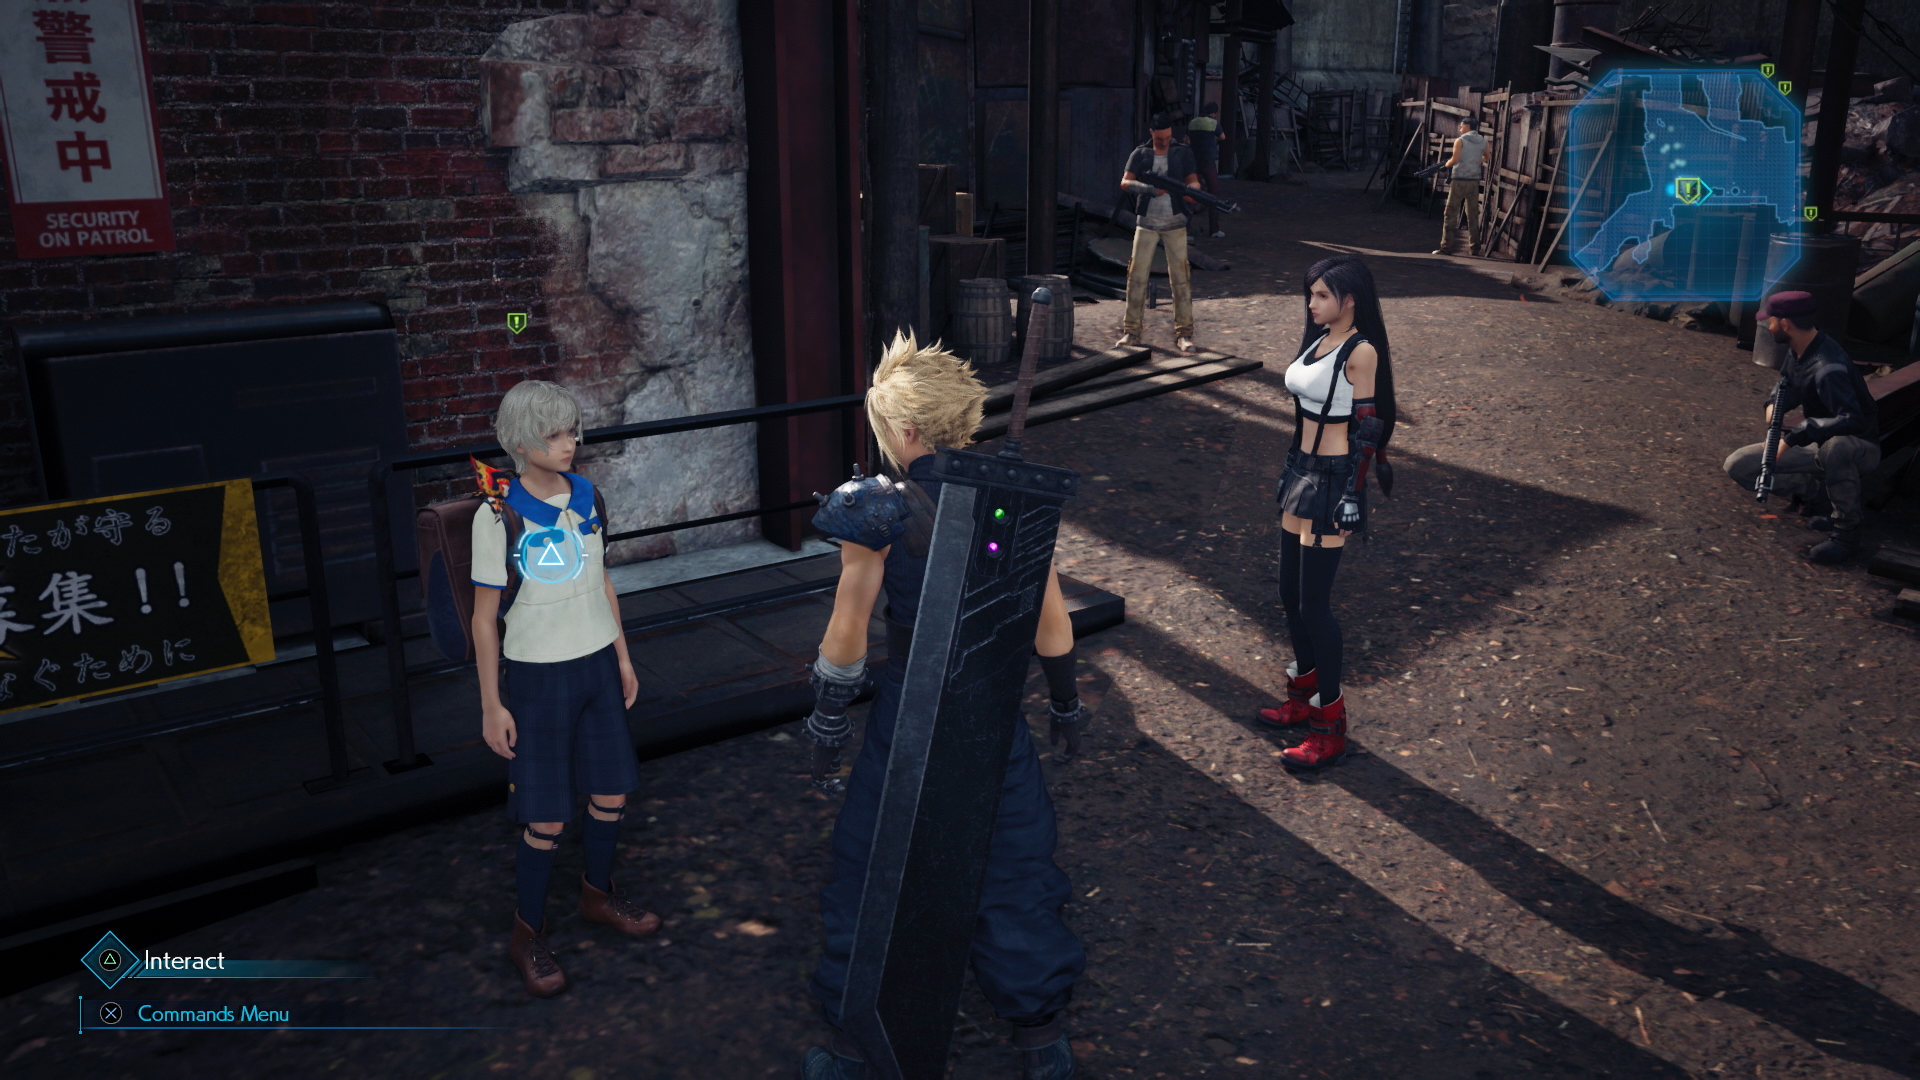 Final Fantasy VII Remake Reveals Another New Character For The Franchise